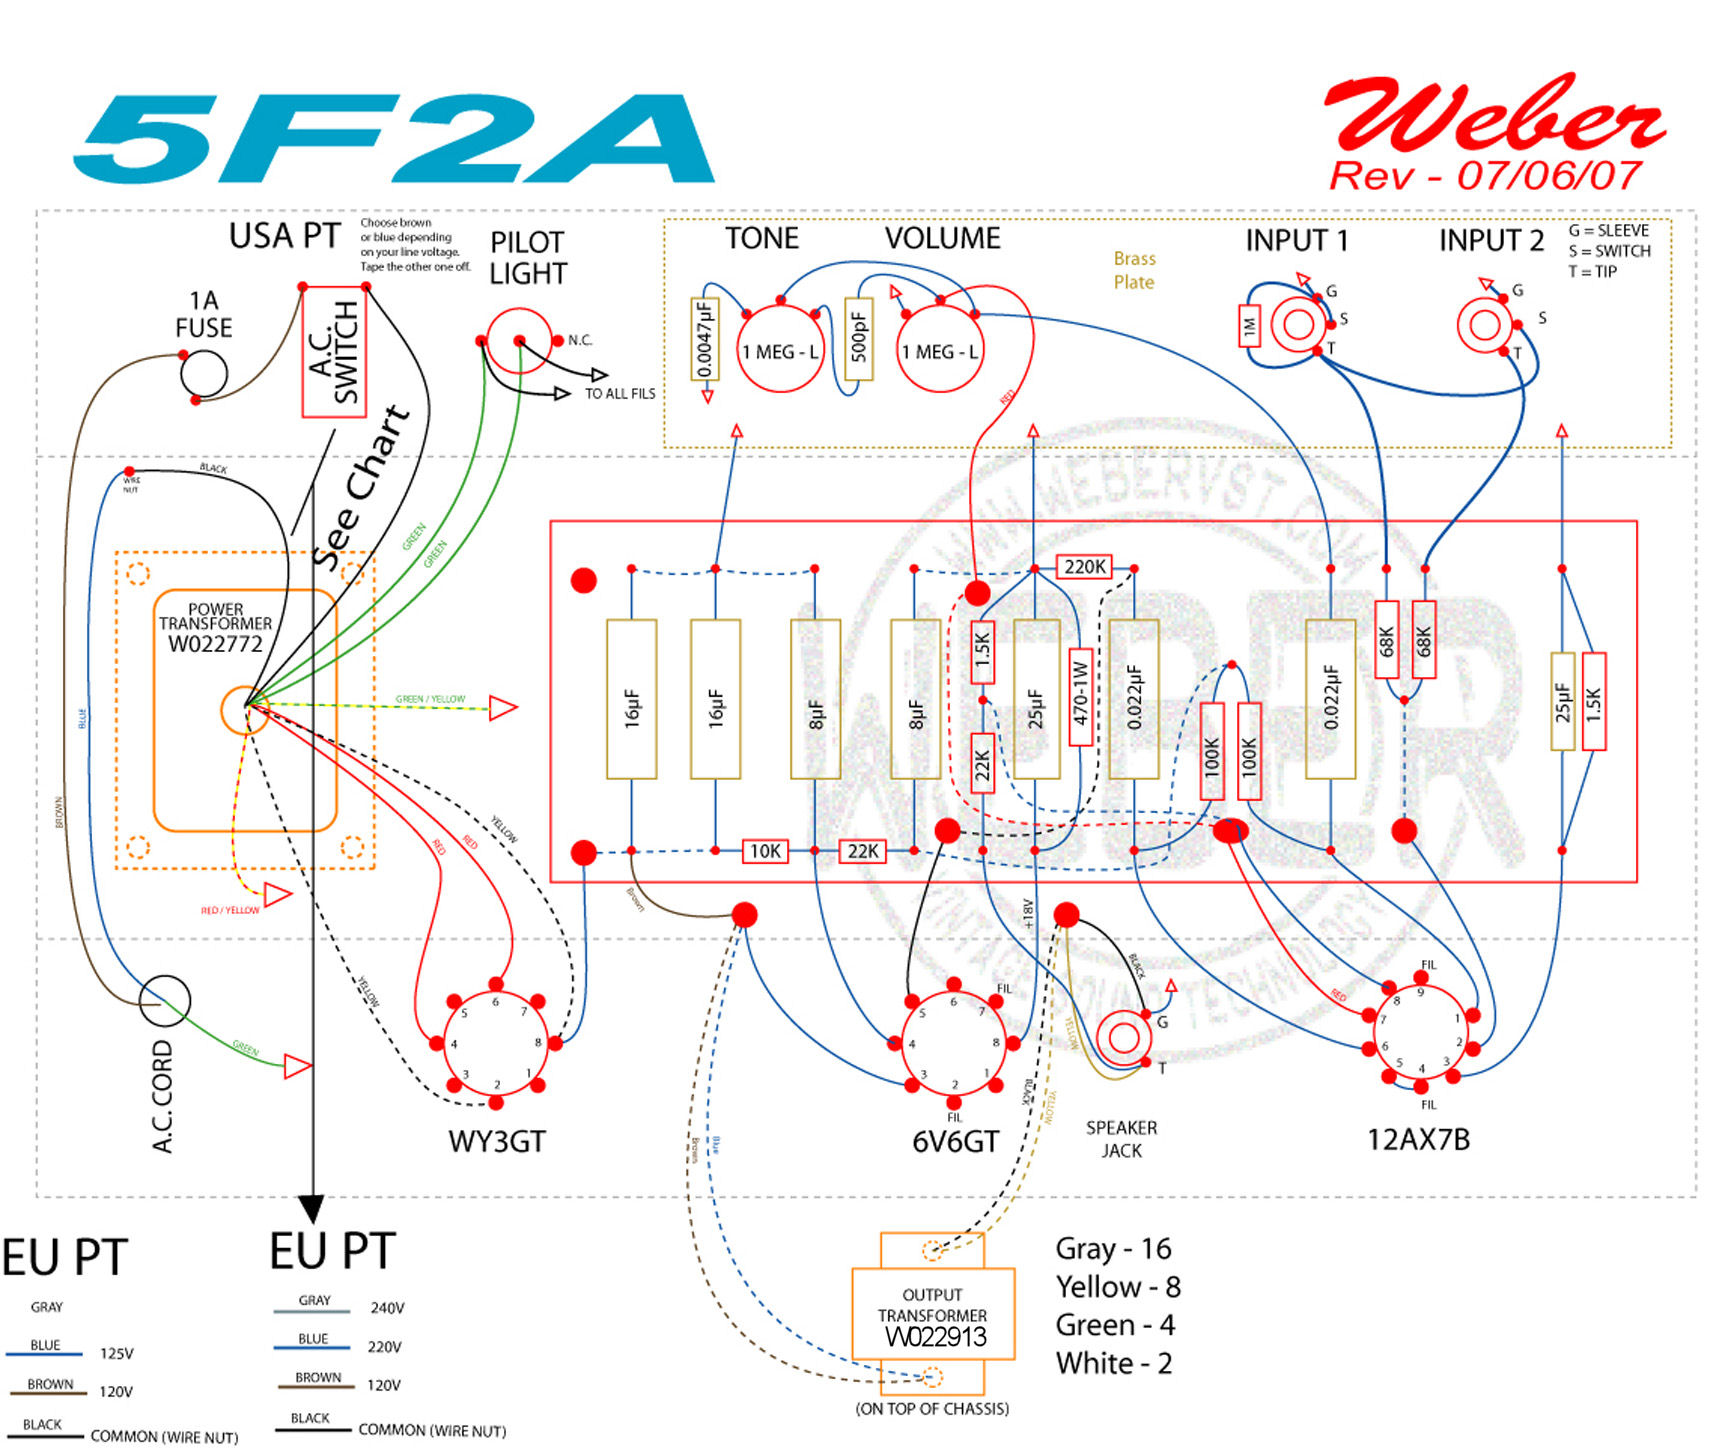 5f2a_layout 5f2a amp kit weber ksg 470 wiring diagrams at crackthecode.co